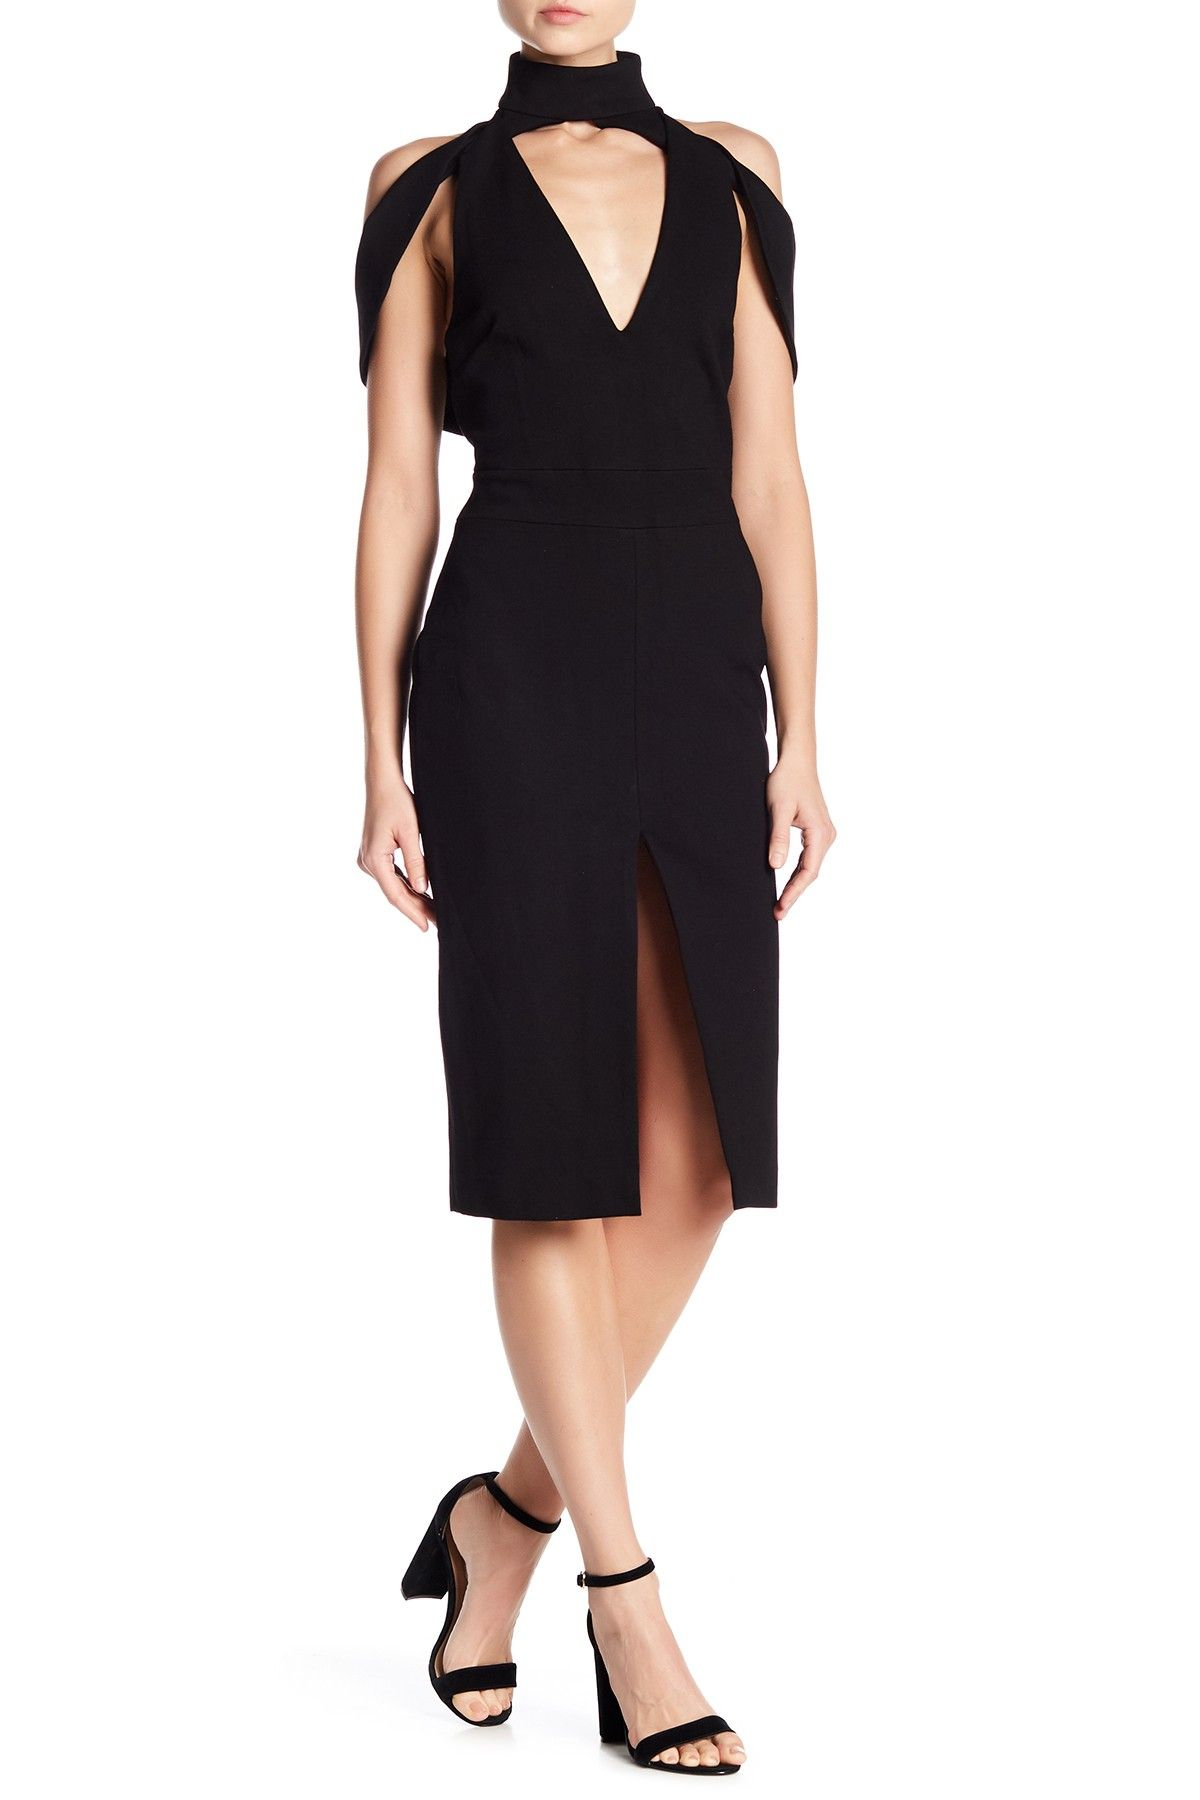 019d15dcf7b024 Elliatt - Gotham Cold Shoulder Dress is now 40% off. Free Shipping on  orders over  100.